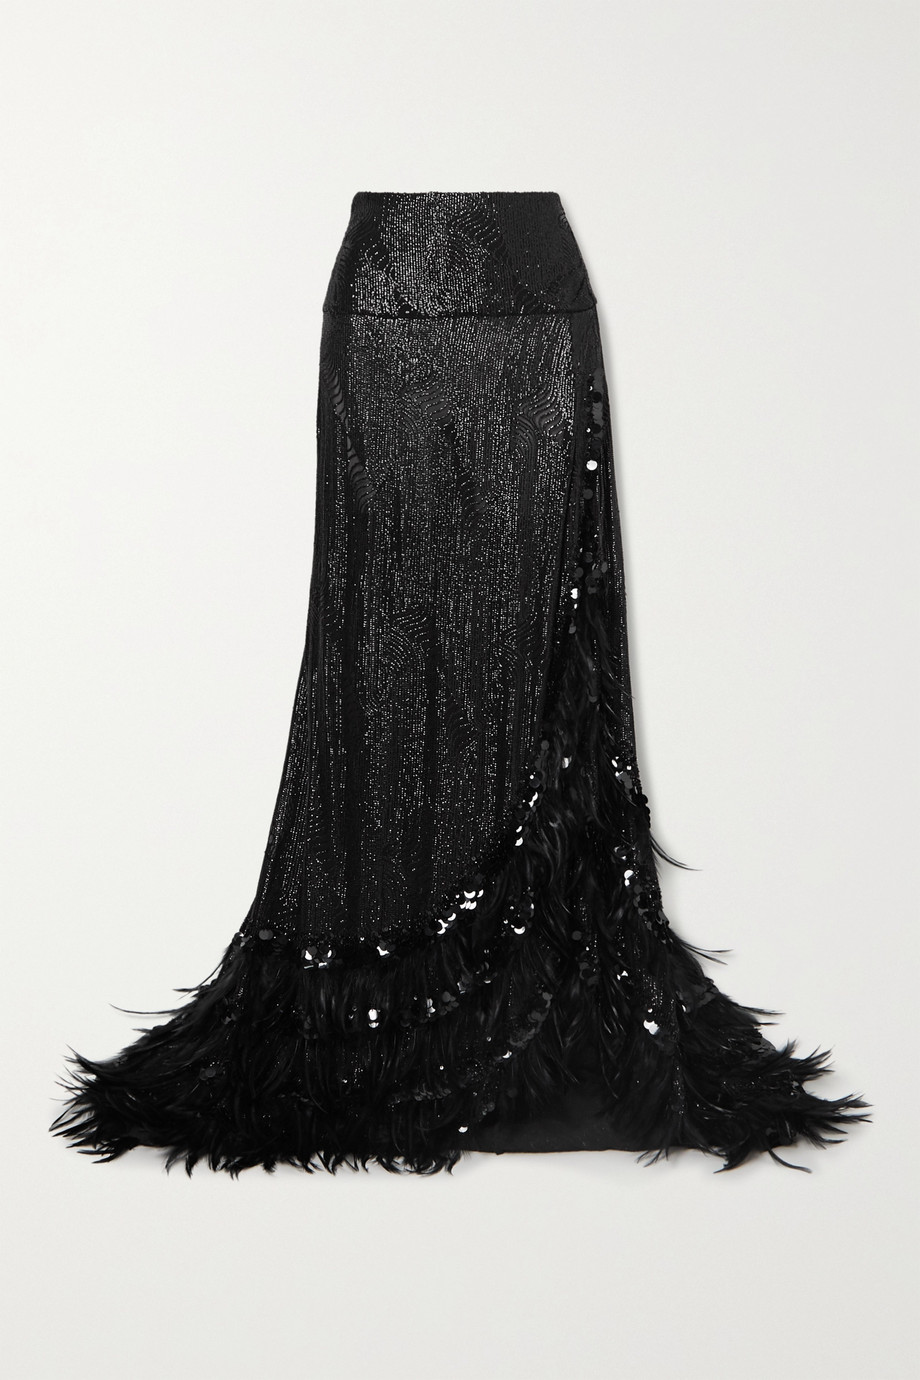 Dries Van Noten Feather-trimmed sequined crepe maxi skirt